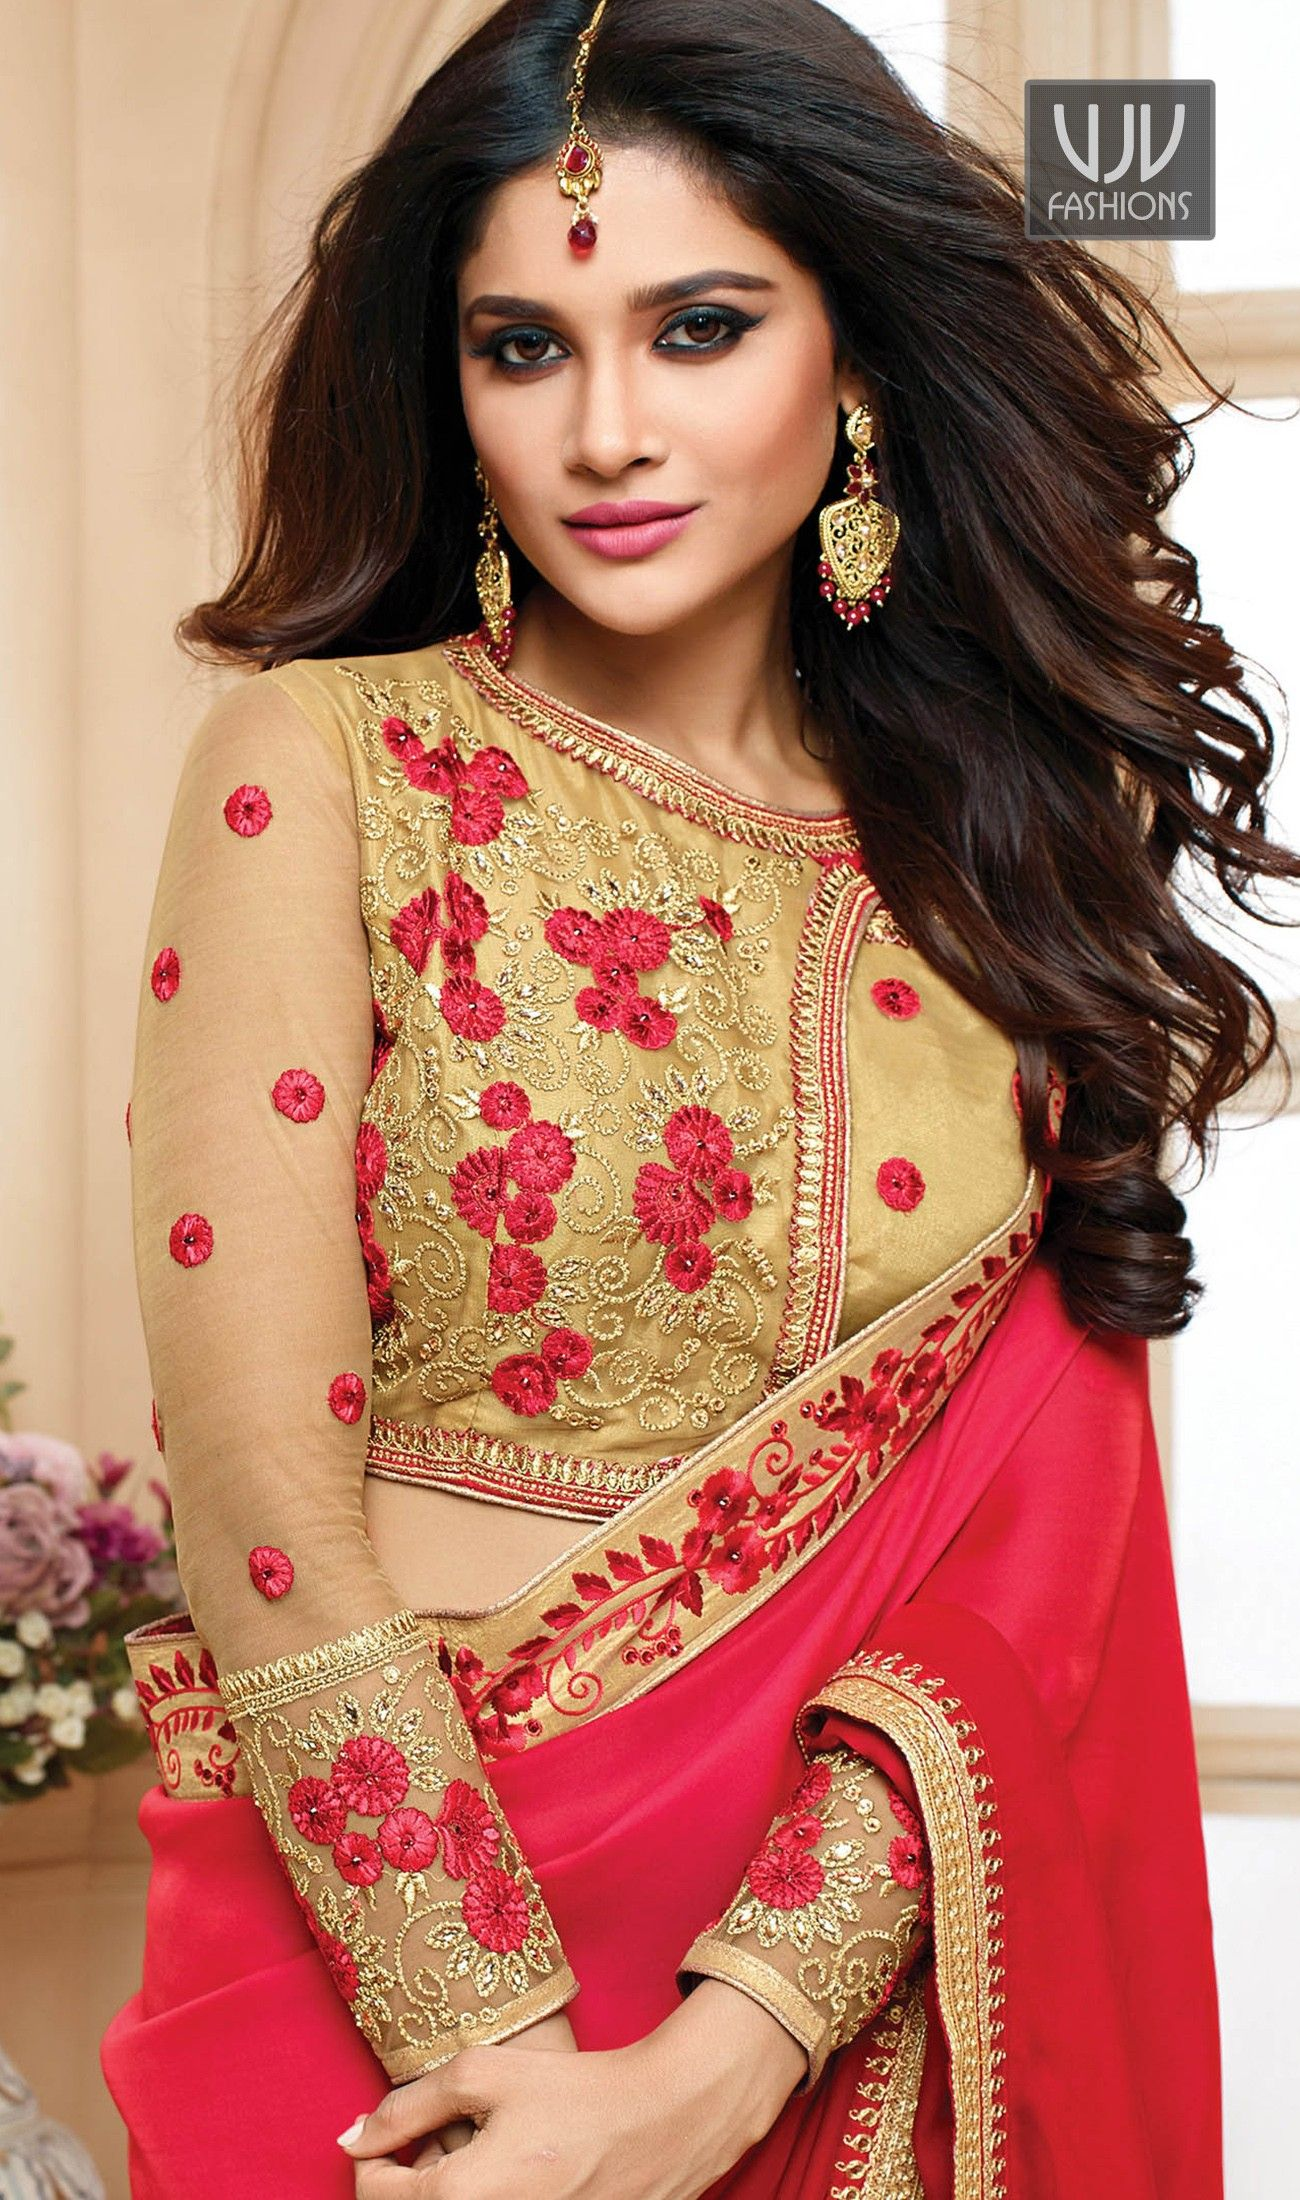 to wear - New sarees stylish video